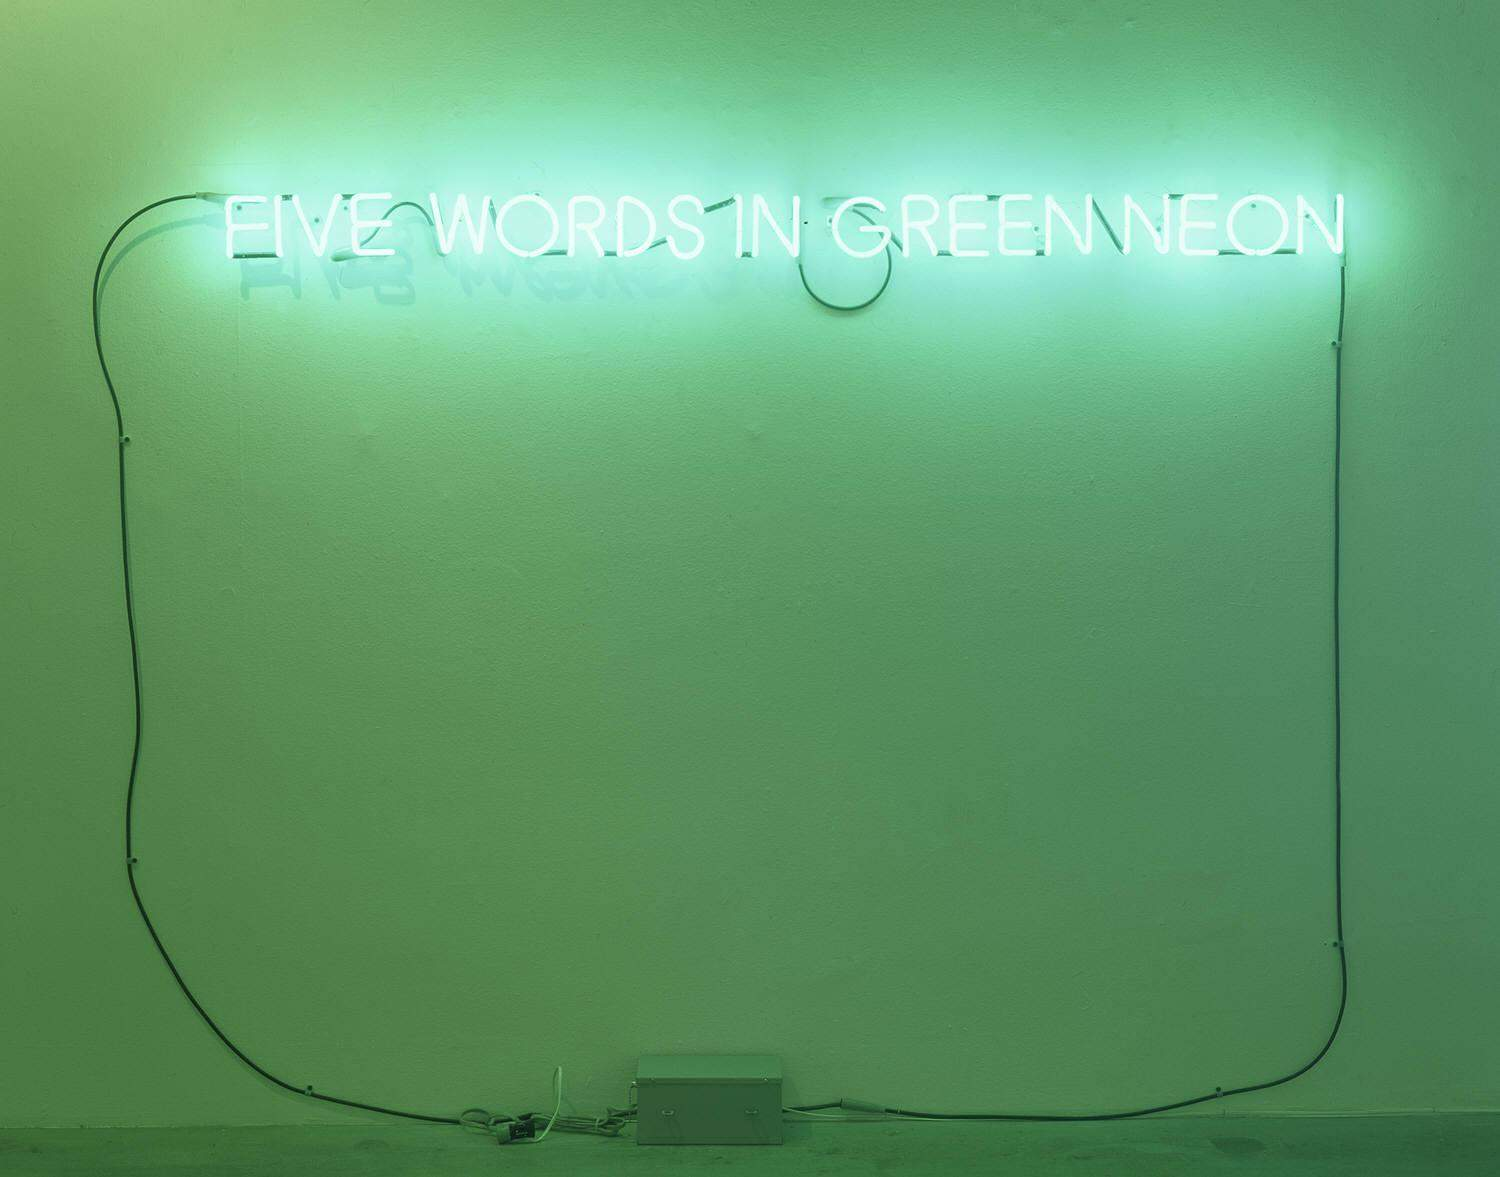 Five Words in Green Neon — Джозеф Кошут